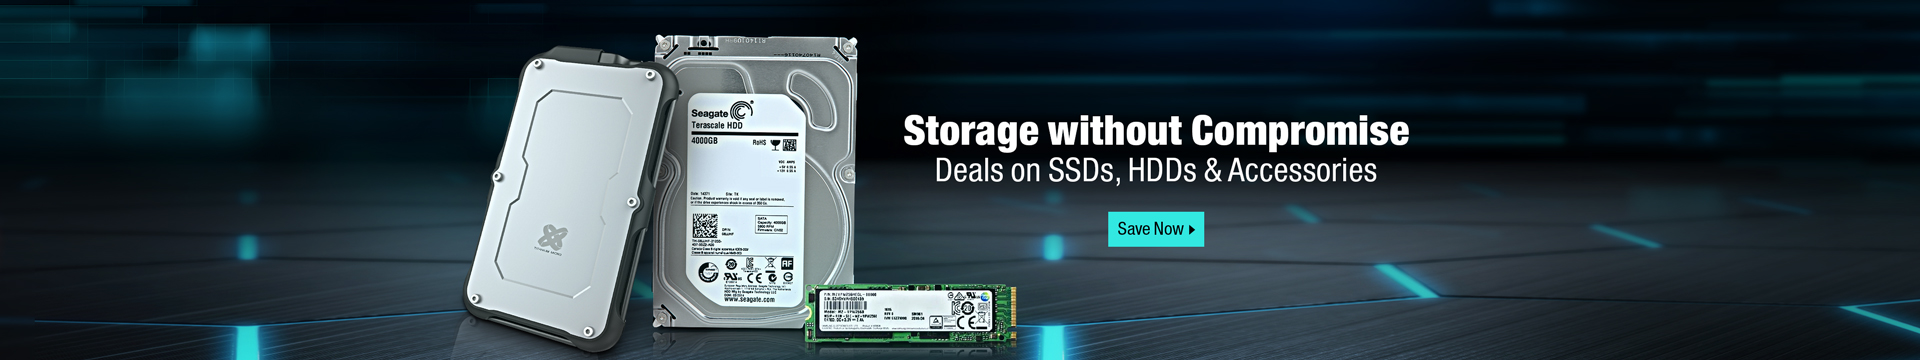 Storage without Compromise